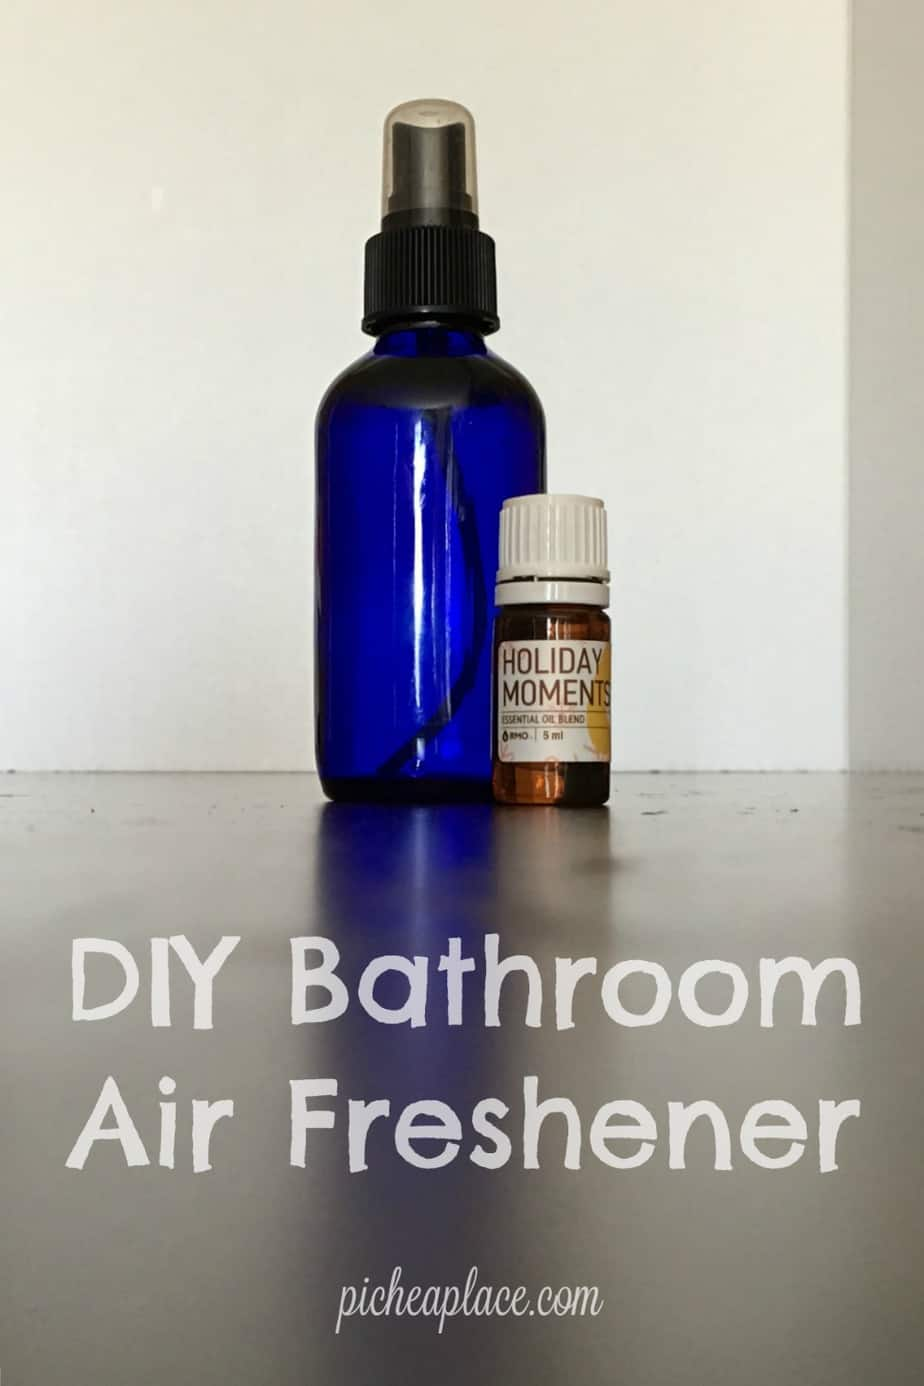 This holiday season, spend five minutes on a mini-bathroom makeover and make this DIY Bathroom Air Freshener to greet your guests with a warm welcome.